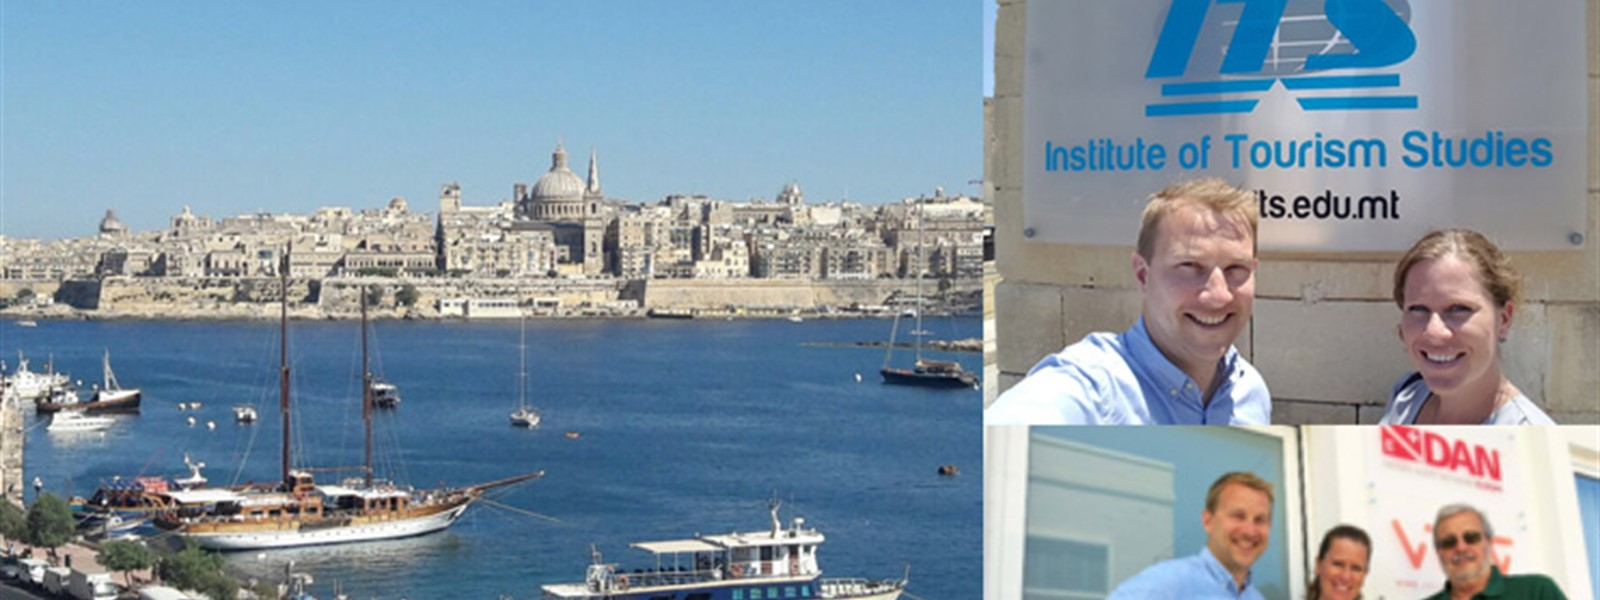 Picture of the ocean and landscape in Malta. Picture of Chloe and James from Reef-World outside the Institute for Tourism Studies in Malta.